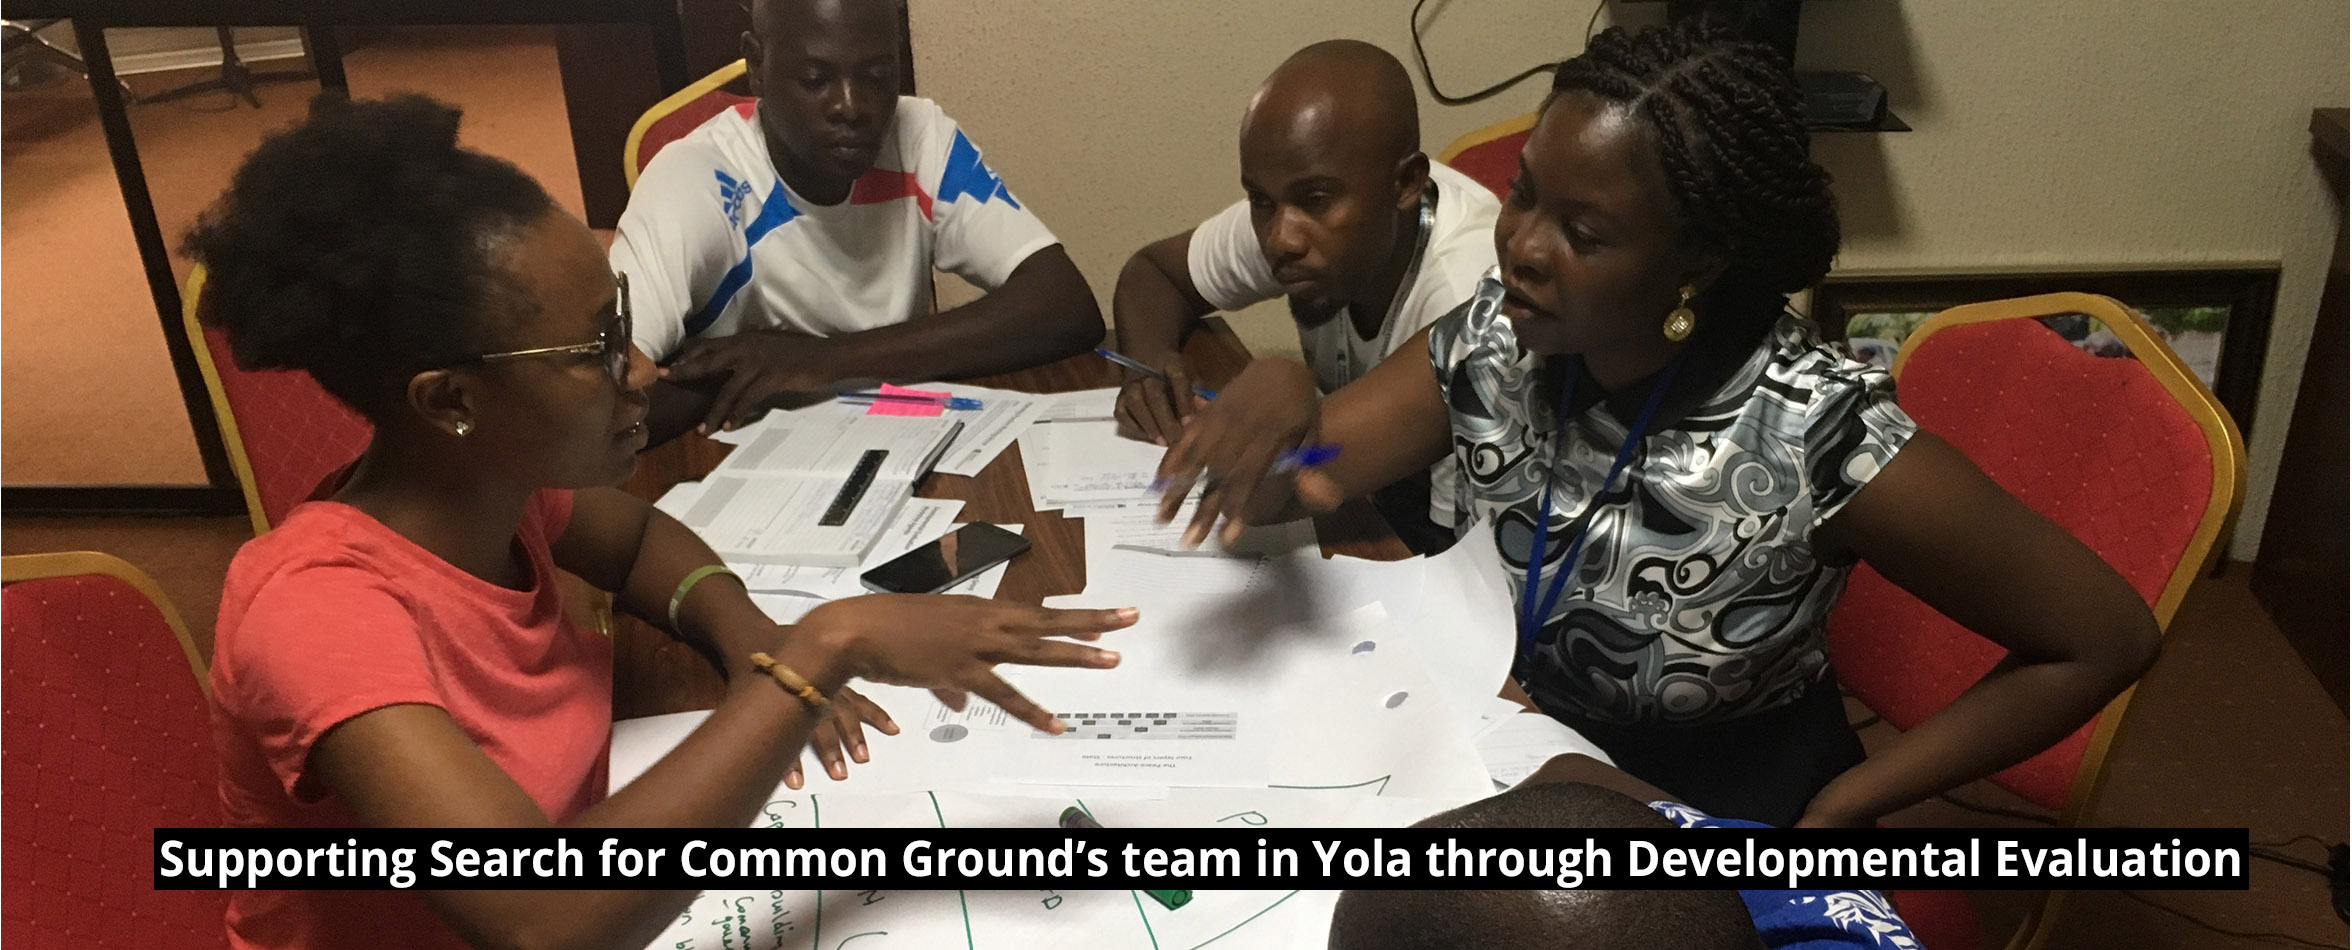 slide-5 Supporting Search for Common Ground's team in Yola through Developmental Evaluation